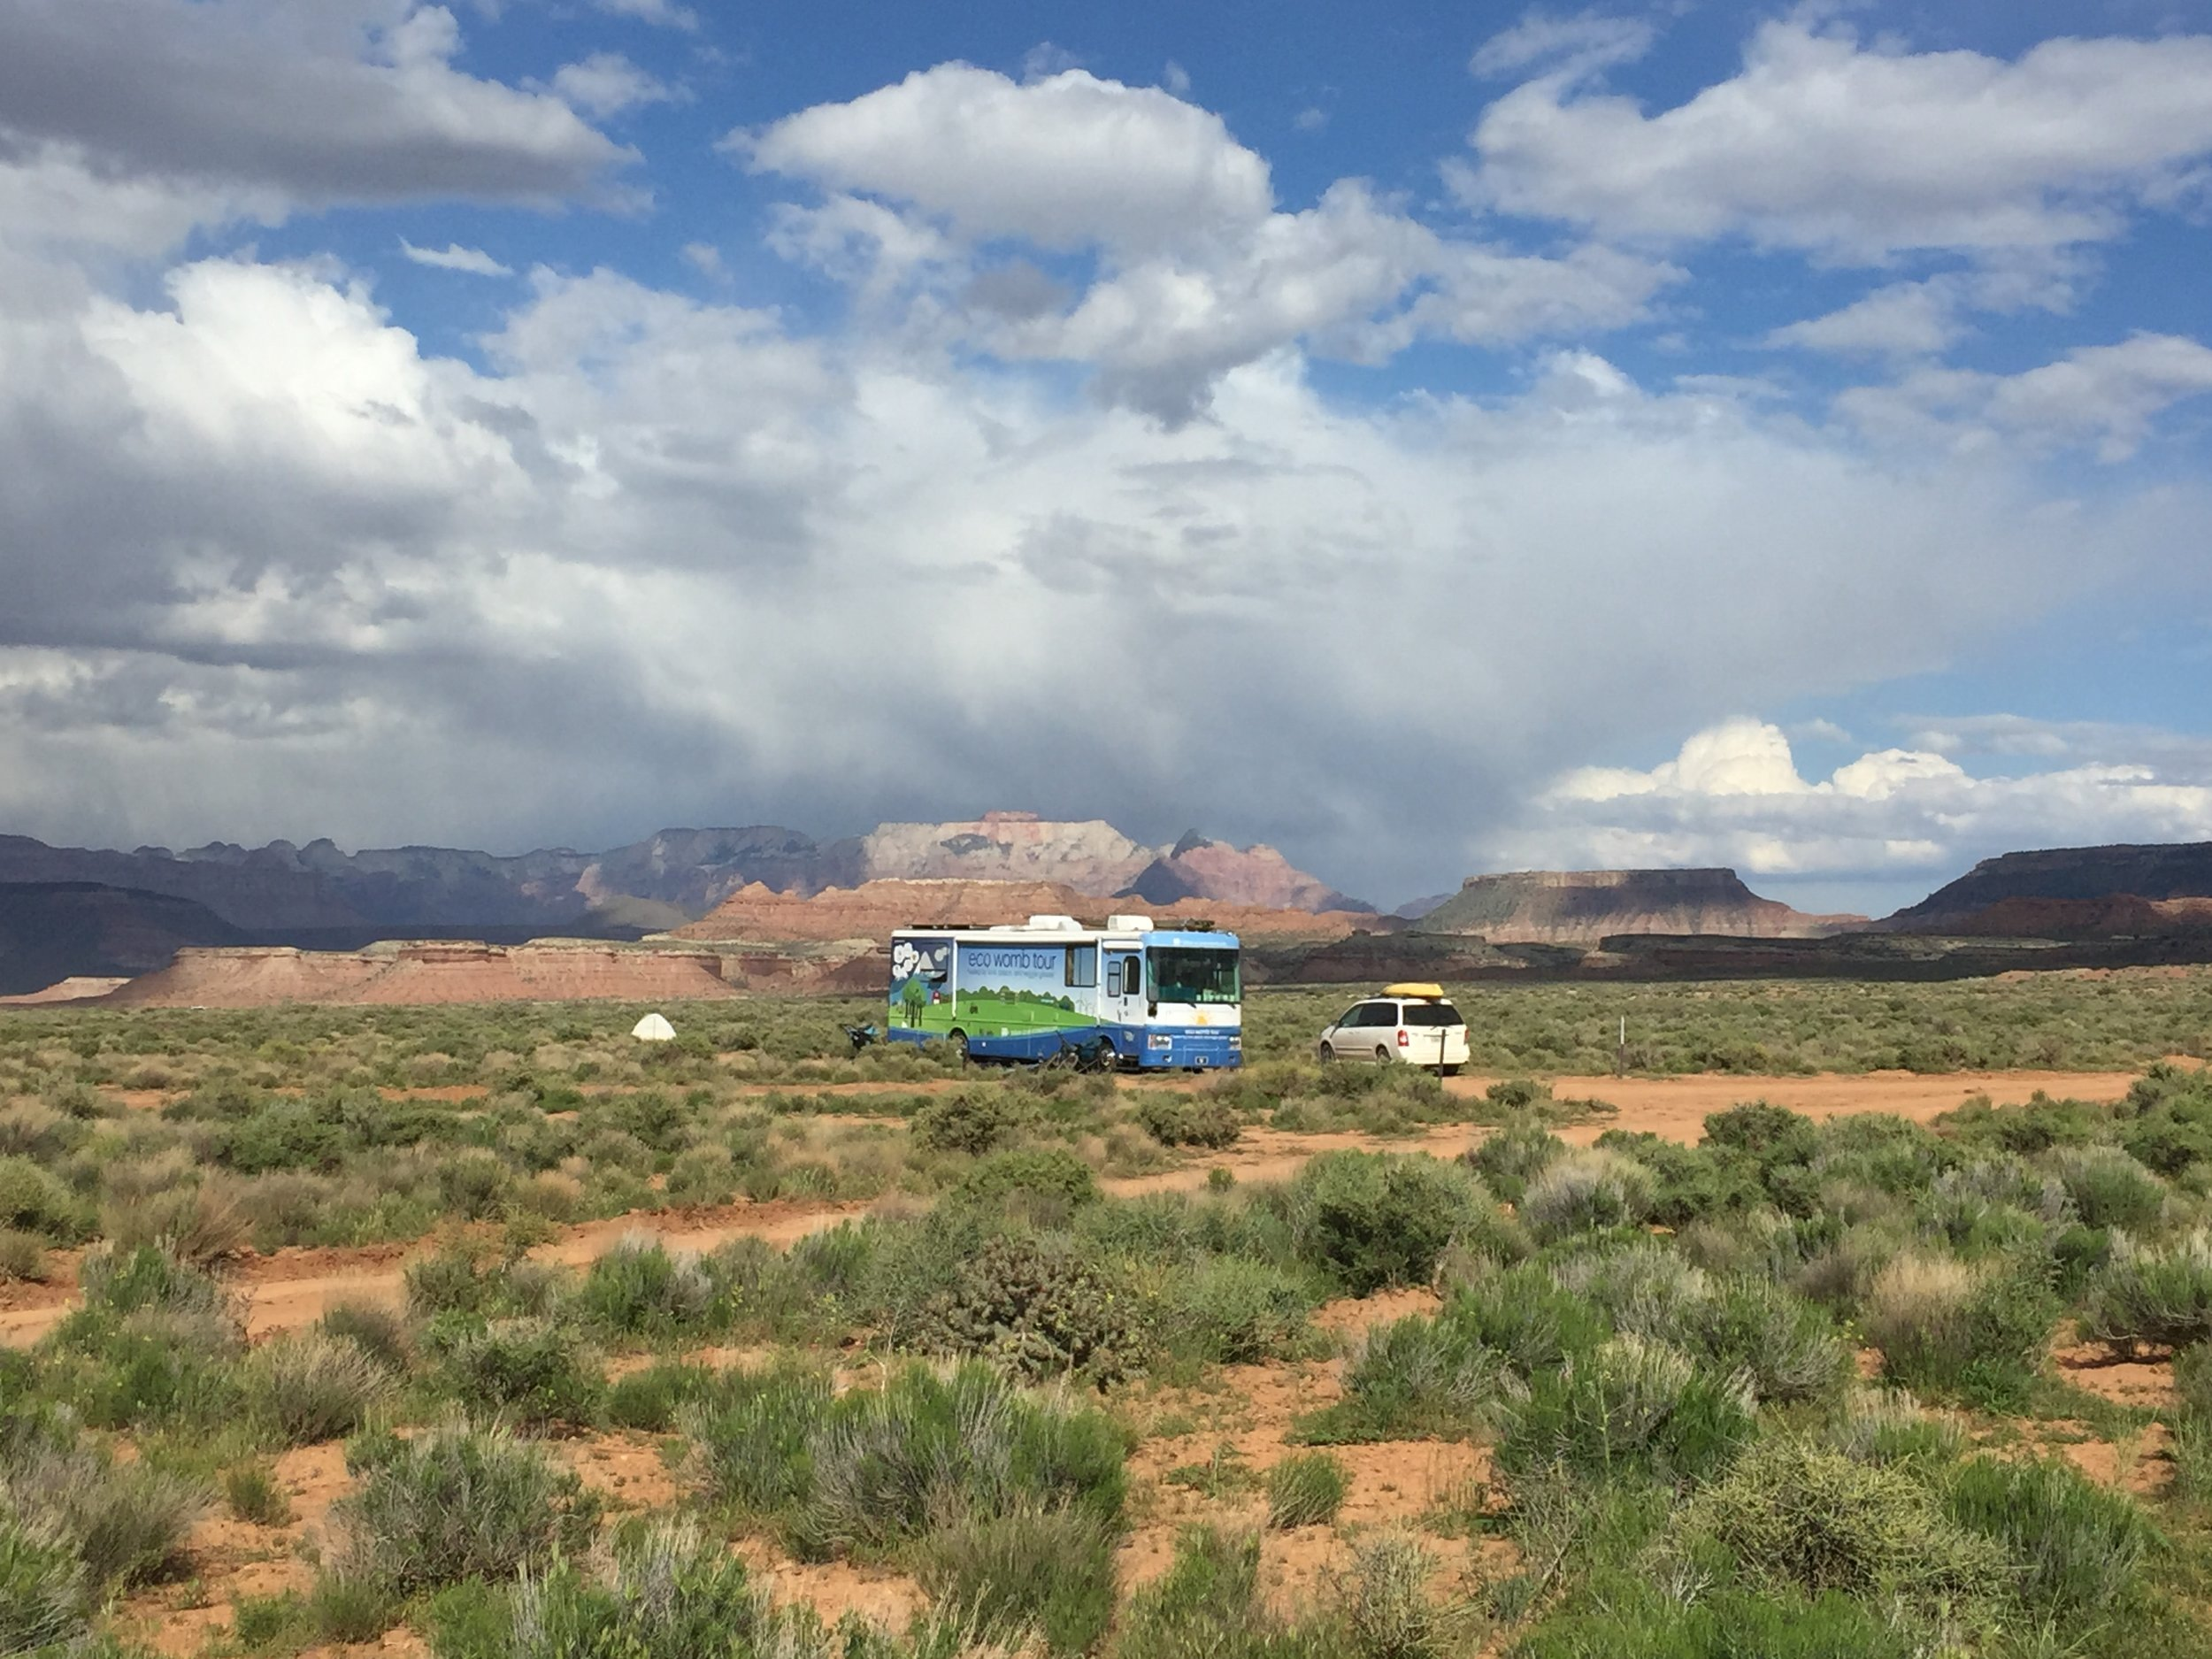 Chilling at the campsite and observing a storm over Zion Canyon, in the distance behind the Eco Womb.